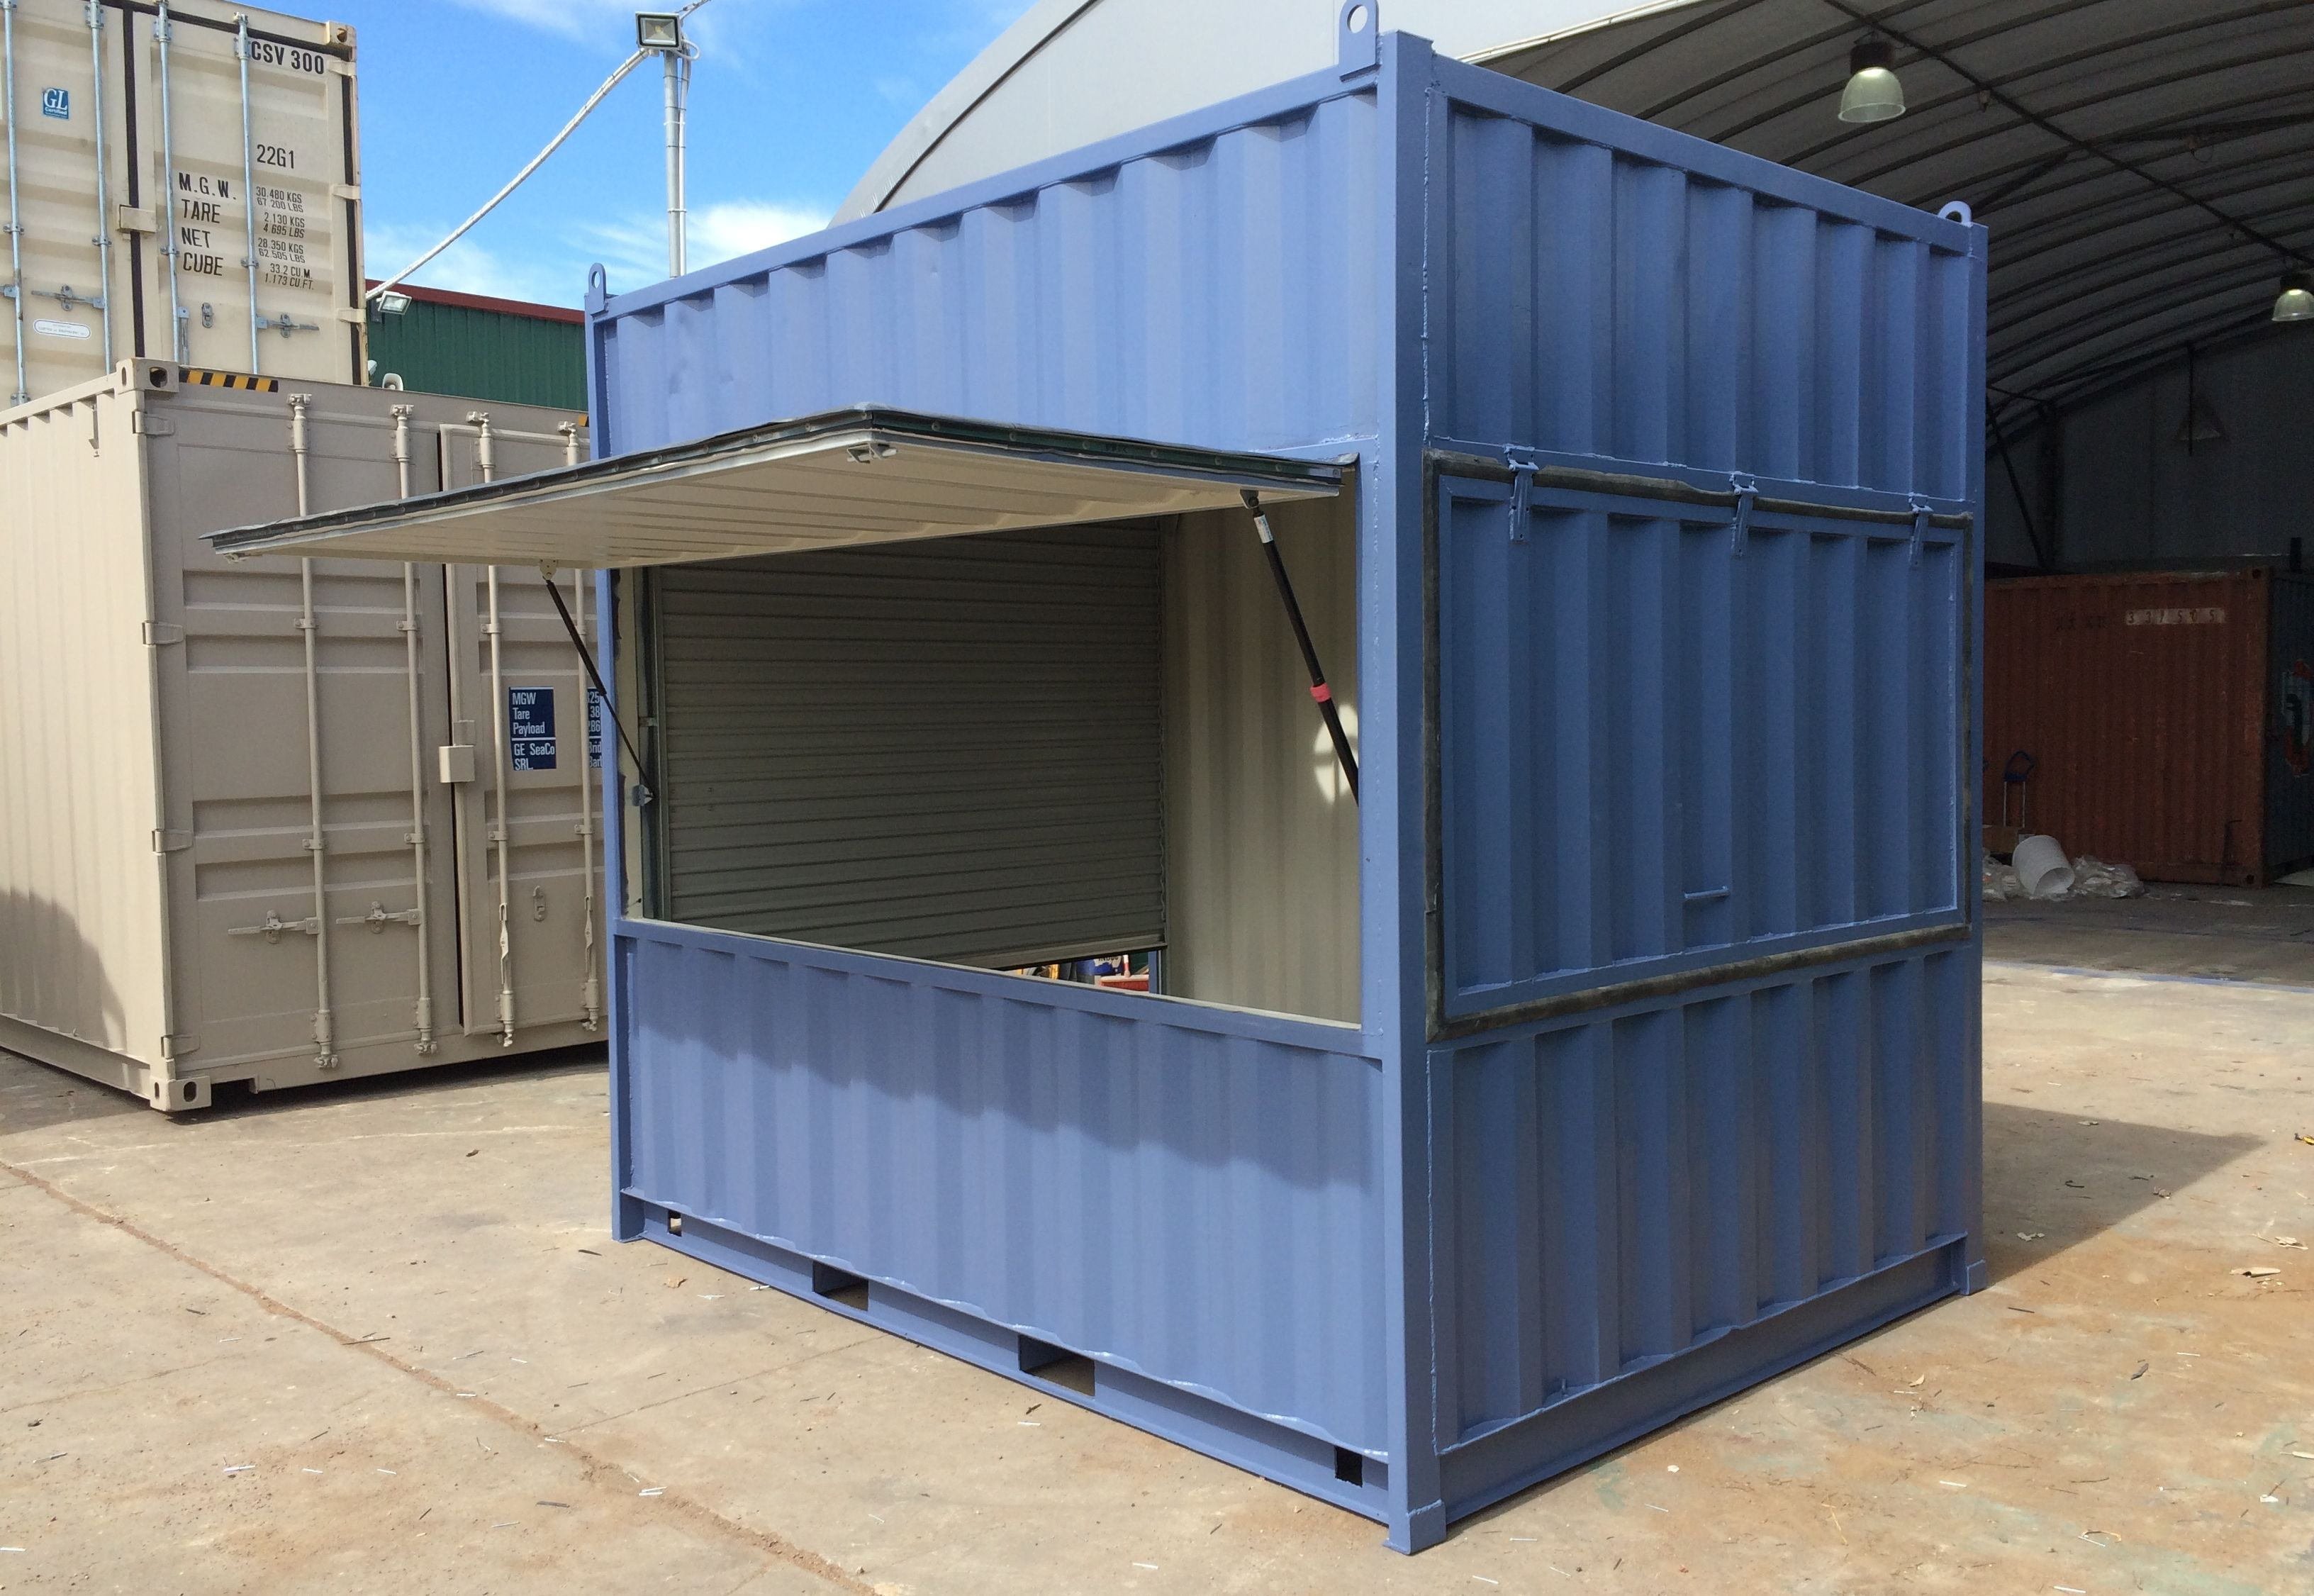 Container Modifications Sunshine All Vic Containers Container Cafe Container Coffee Shop Cafe Shop Design